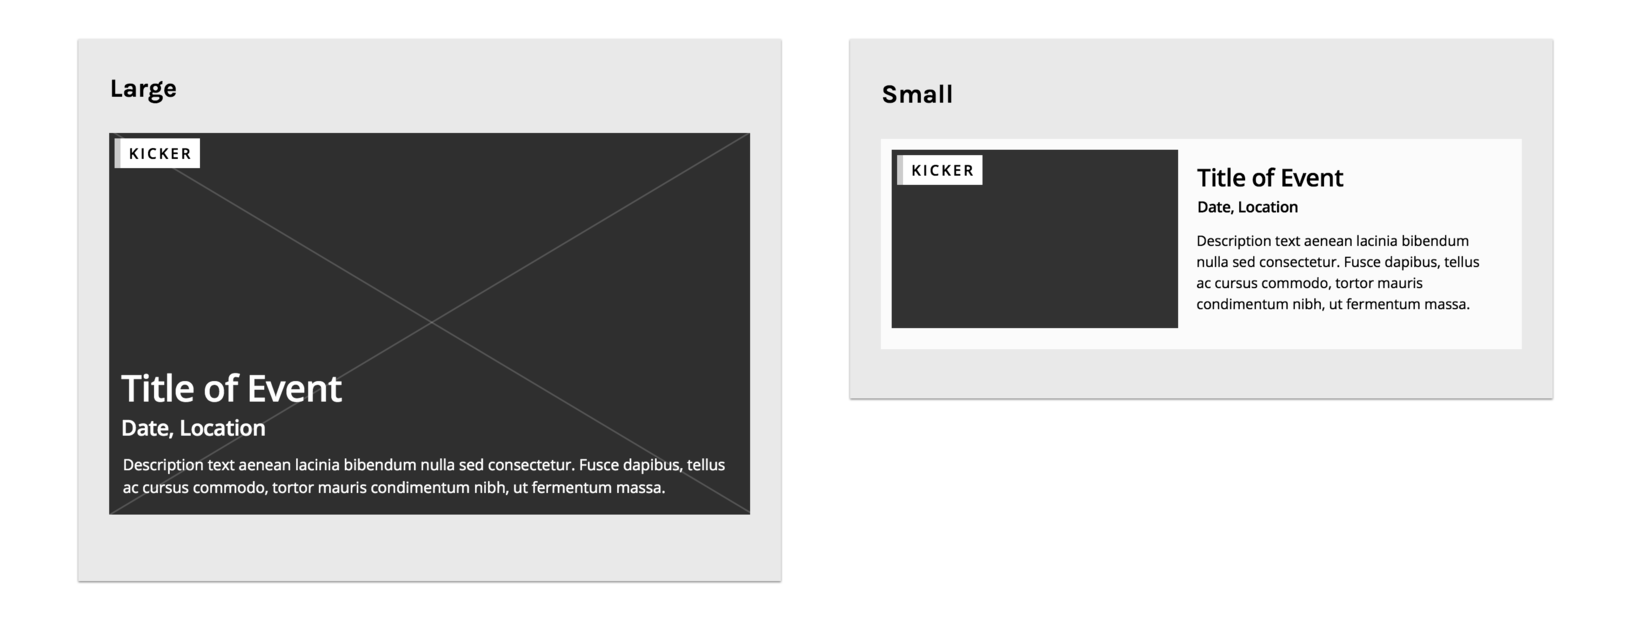 Content pattern examples in the component-based design process.